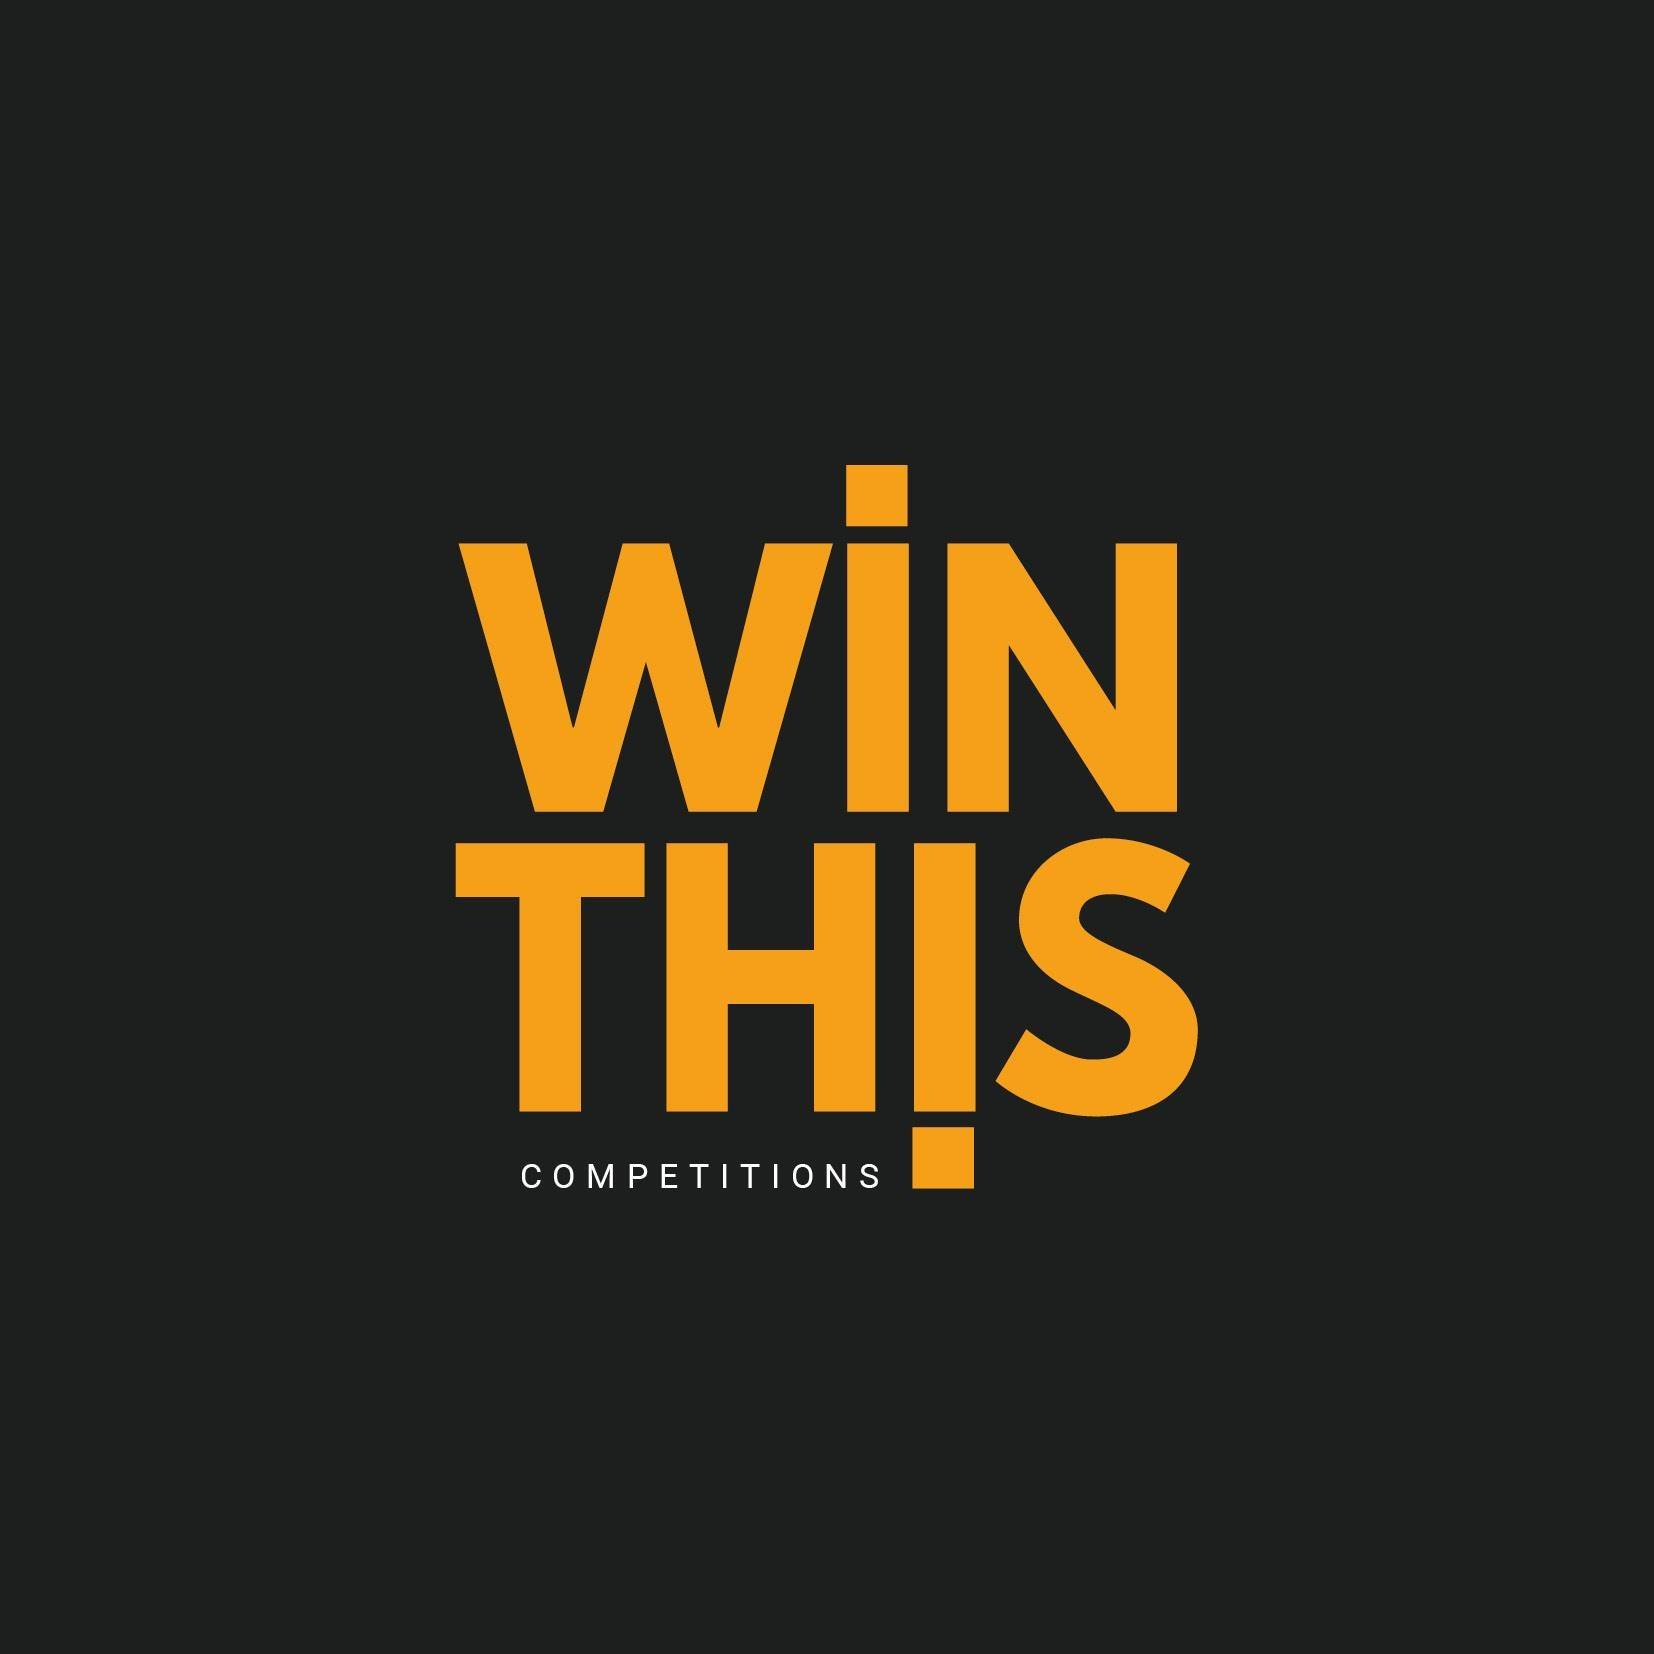 Win This Competitions